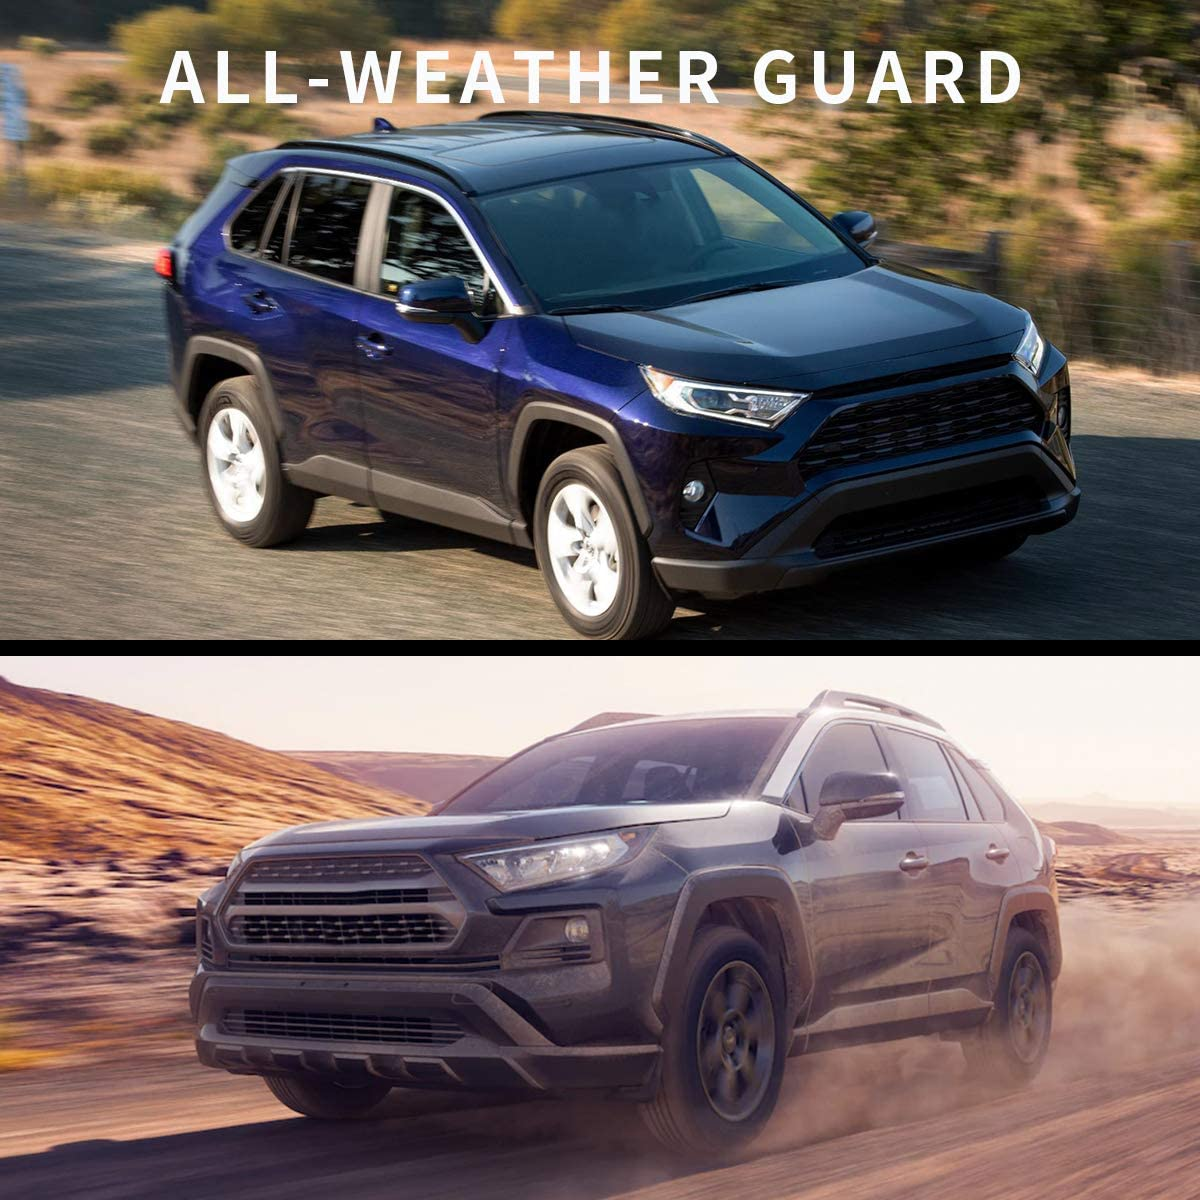 Unique Black TPE All-Weather Guard Includes 1st and 2nd Row Full Set Liners oEdRo Floor Mats Compatible with 2019-2020 Toyota RAV4